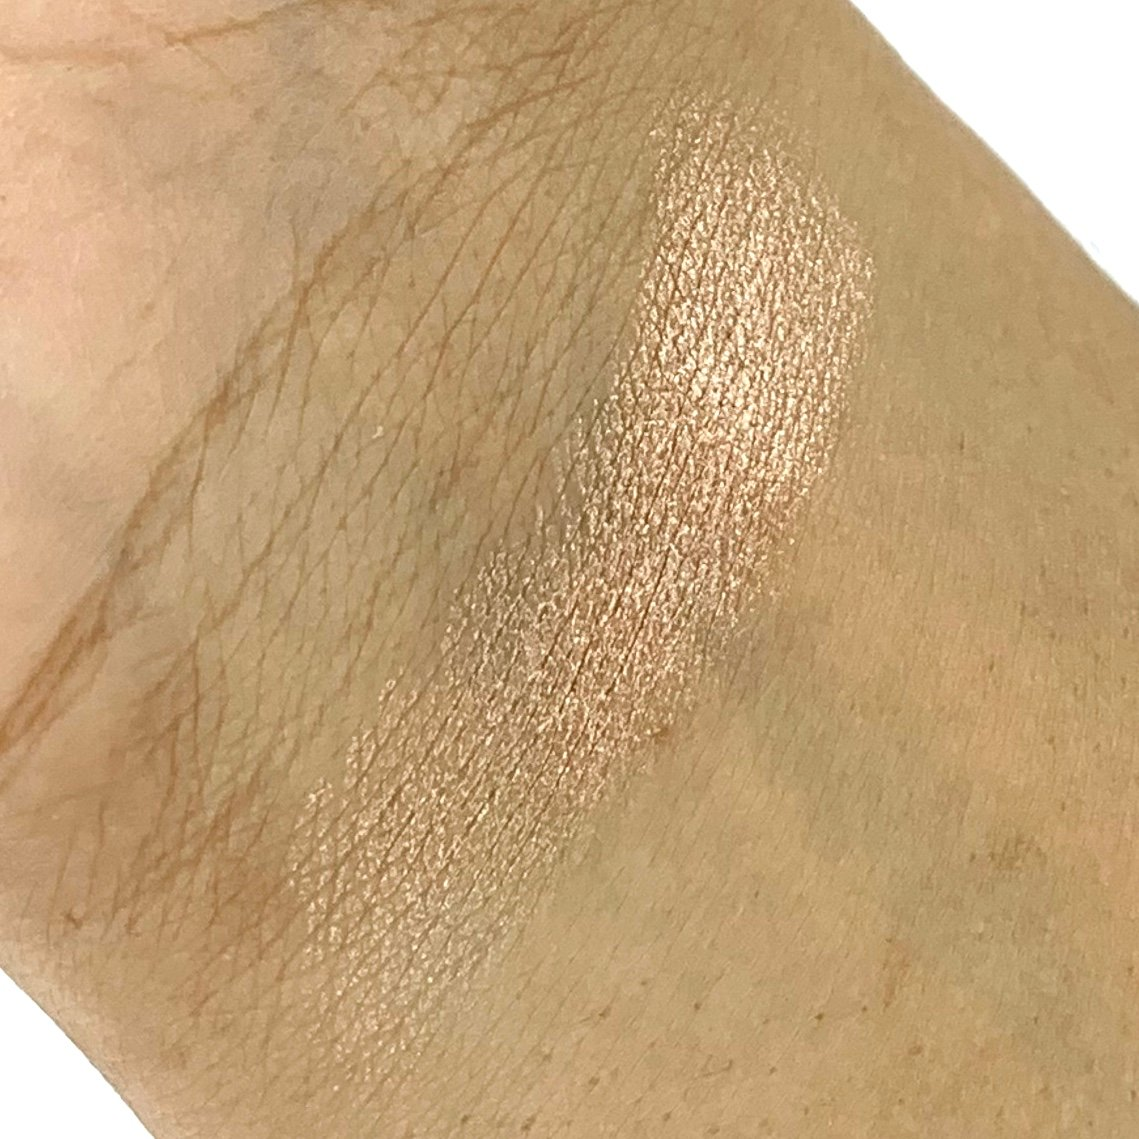 IBY Beauty Radiant Glow Highlighter 24k Magic Swatch for Birch Box June 2020